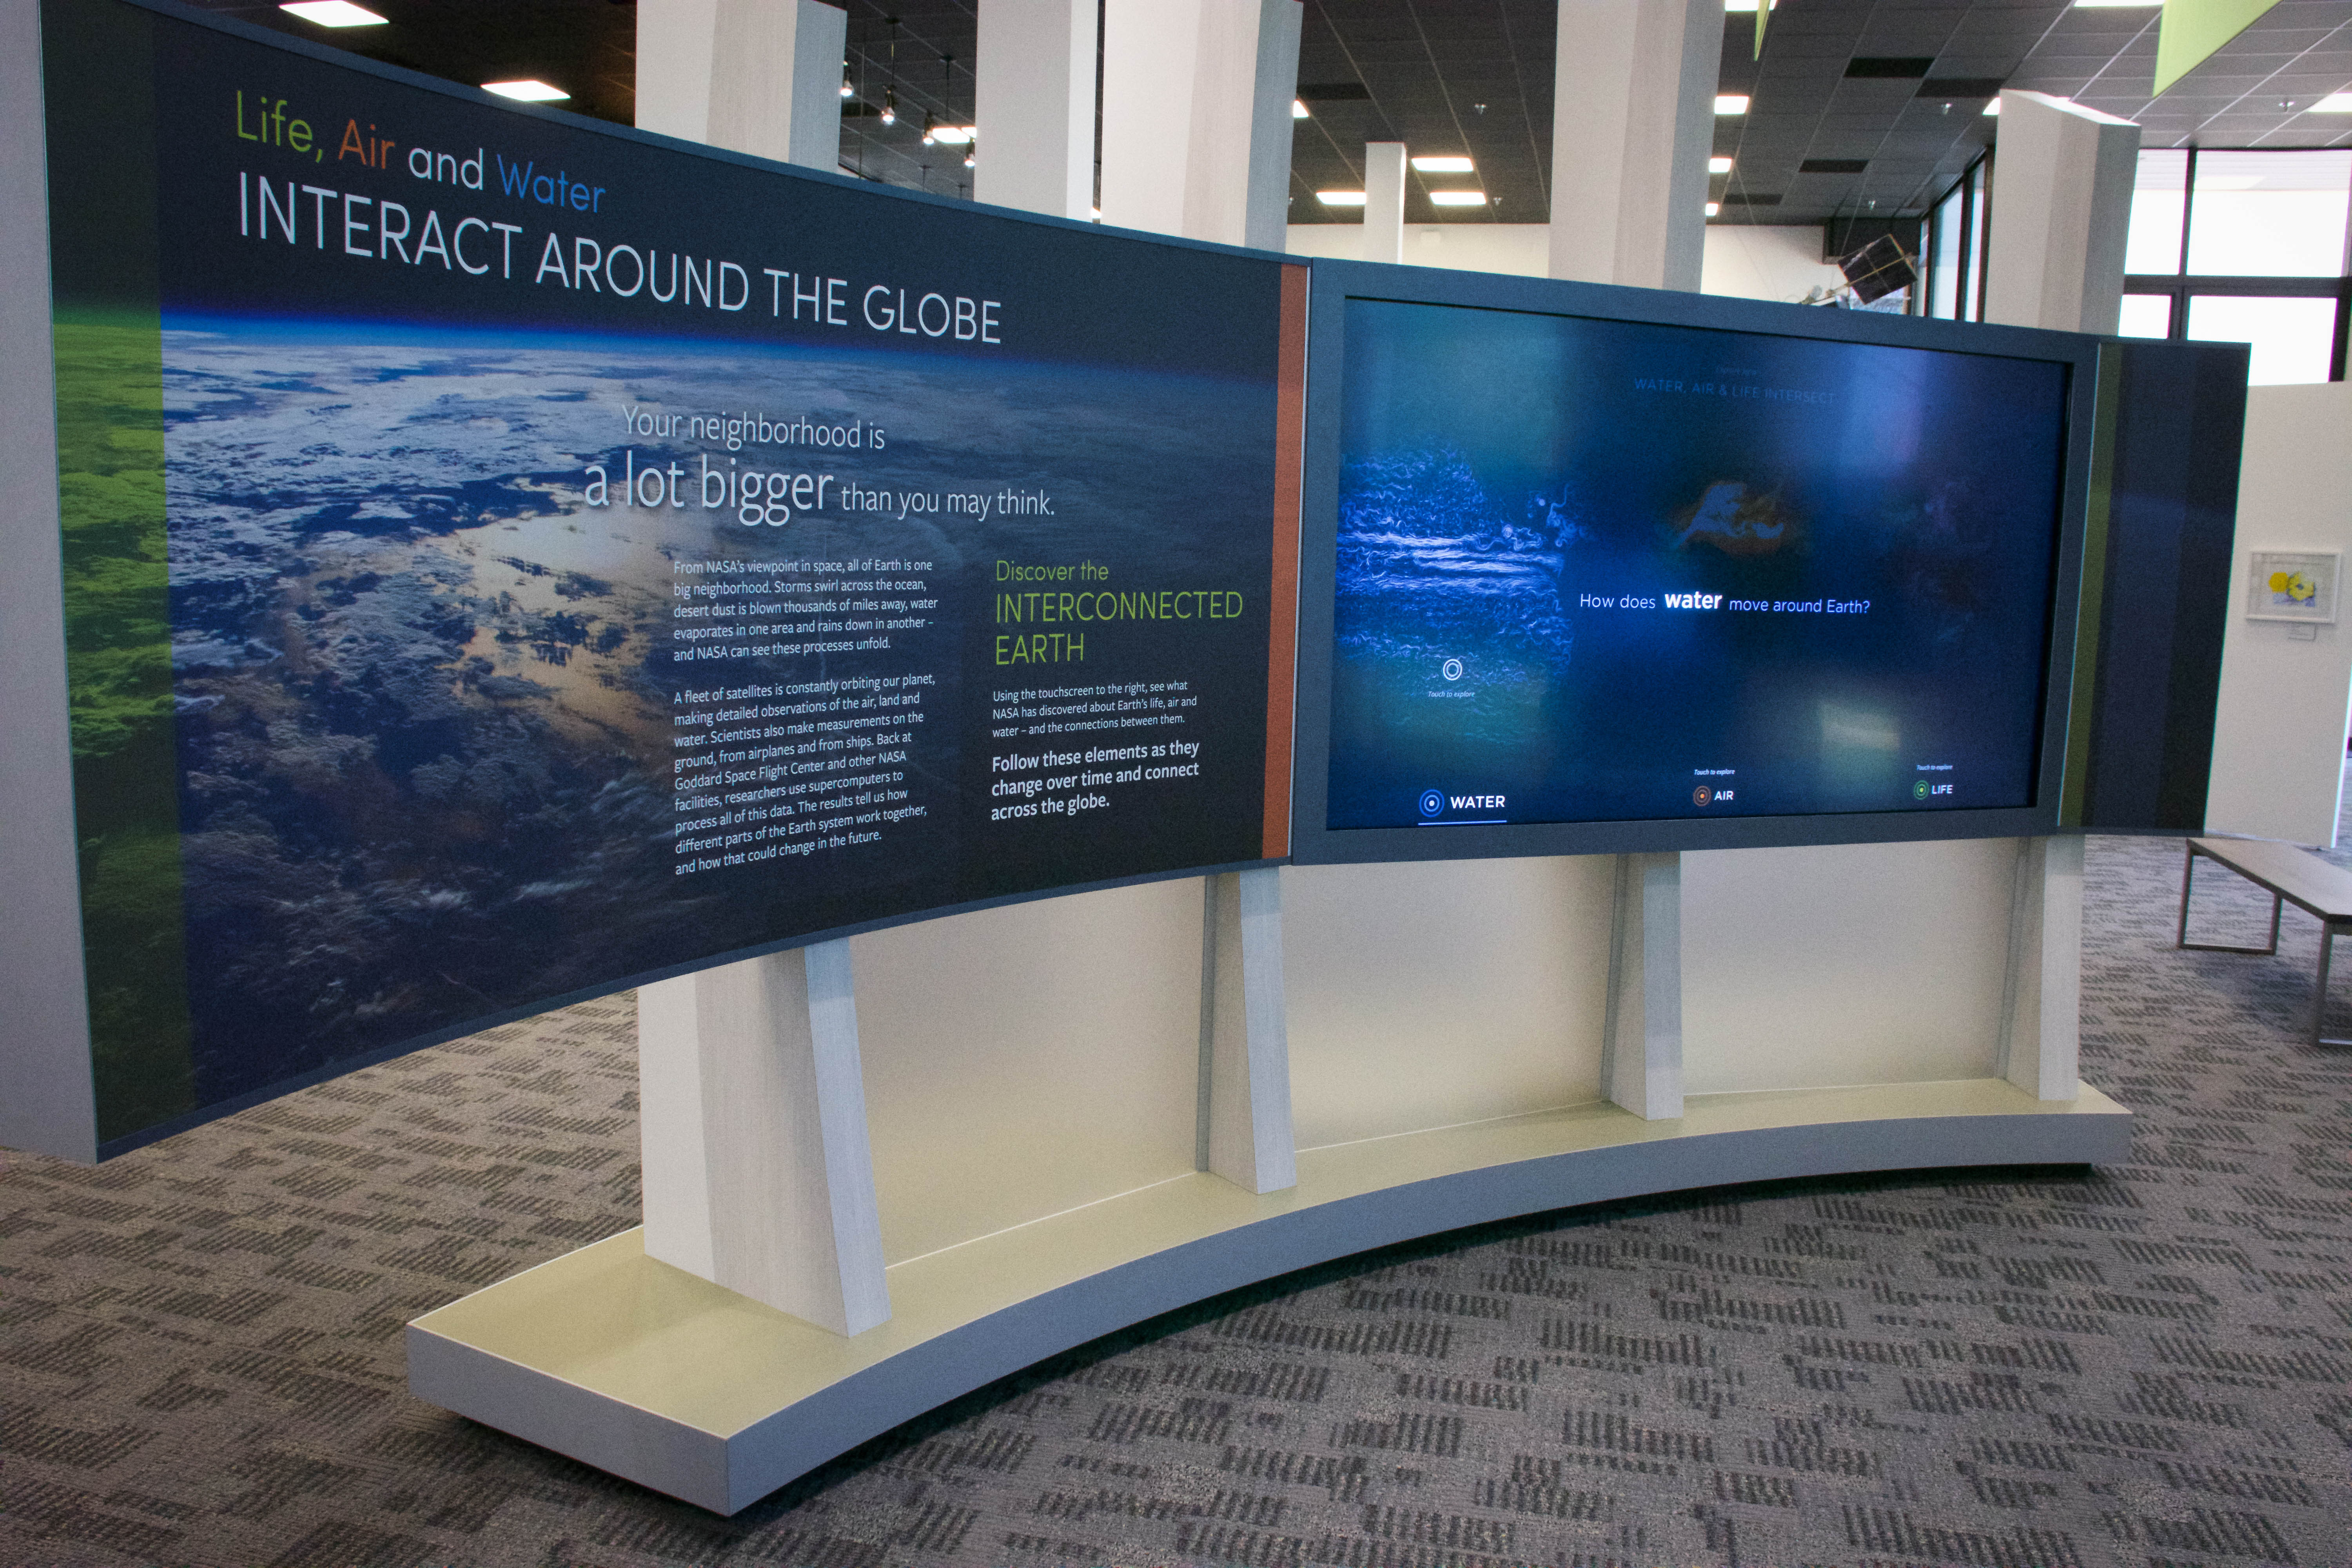 Nasa federal credit union security center - A Curved Wall Panel With Text And Images